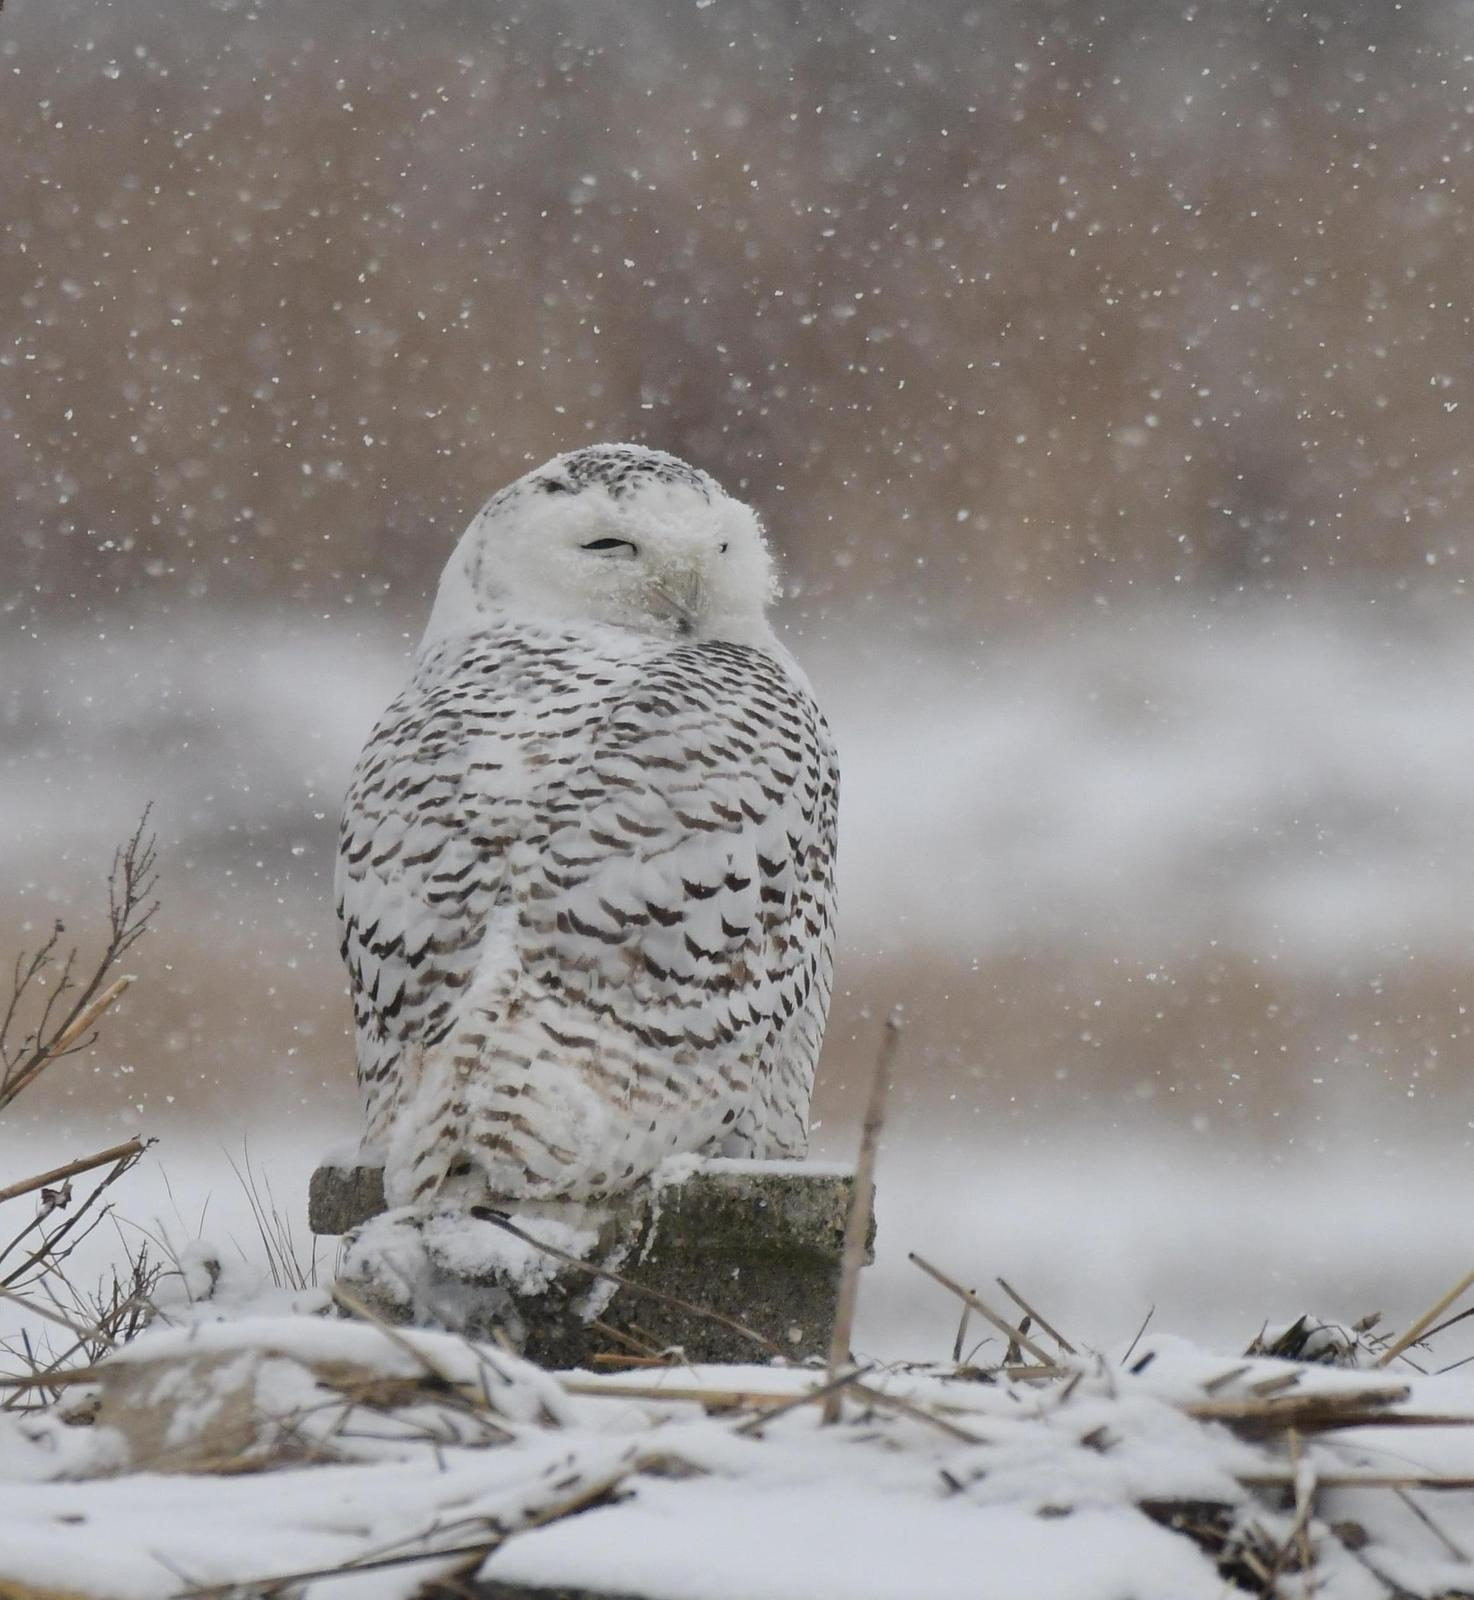 Snowy Owl Photo by Jacob Zadik